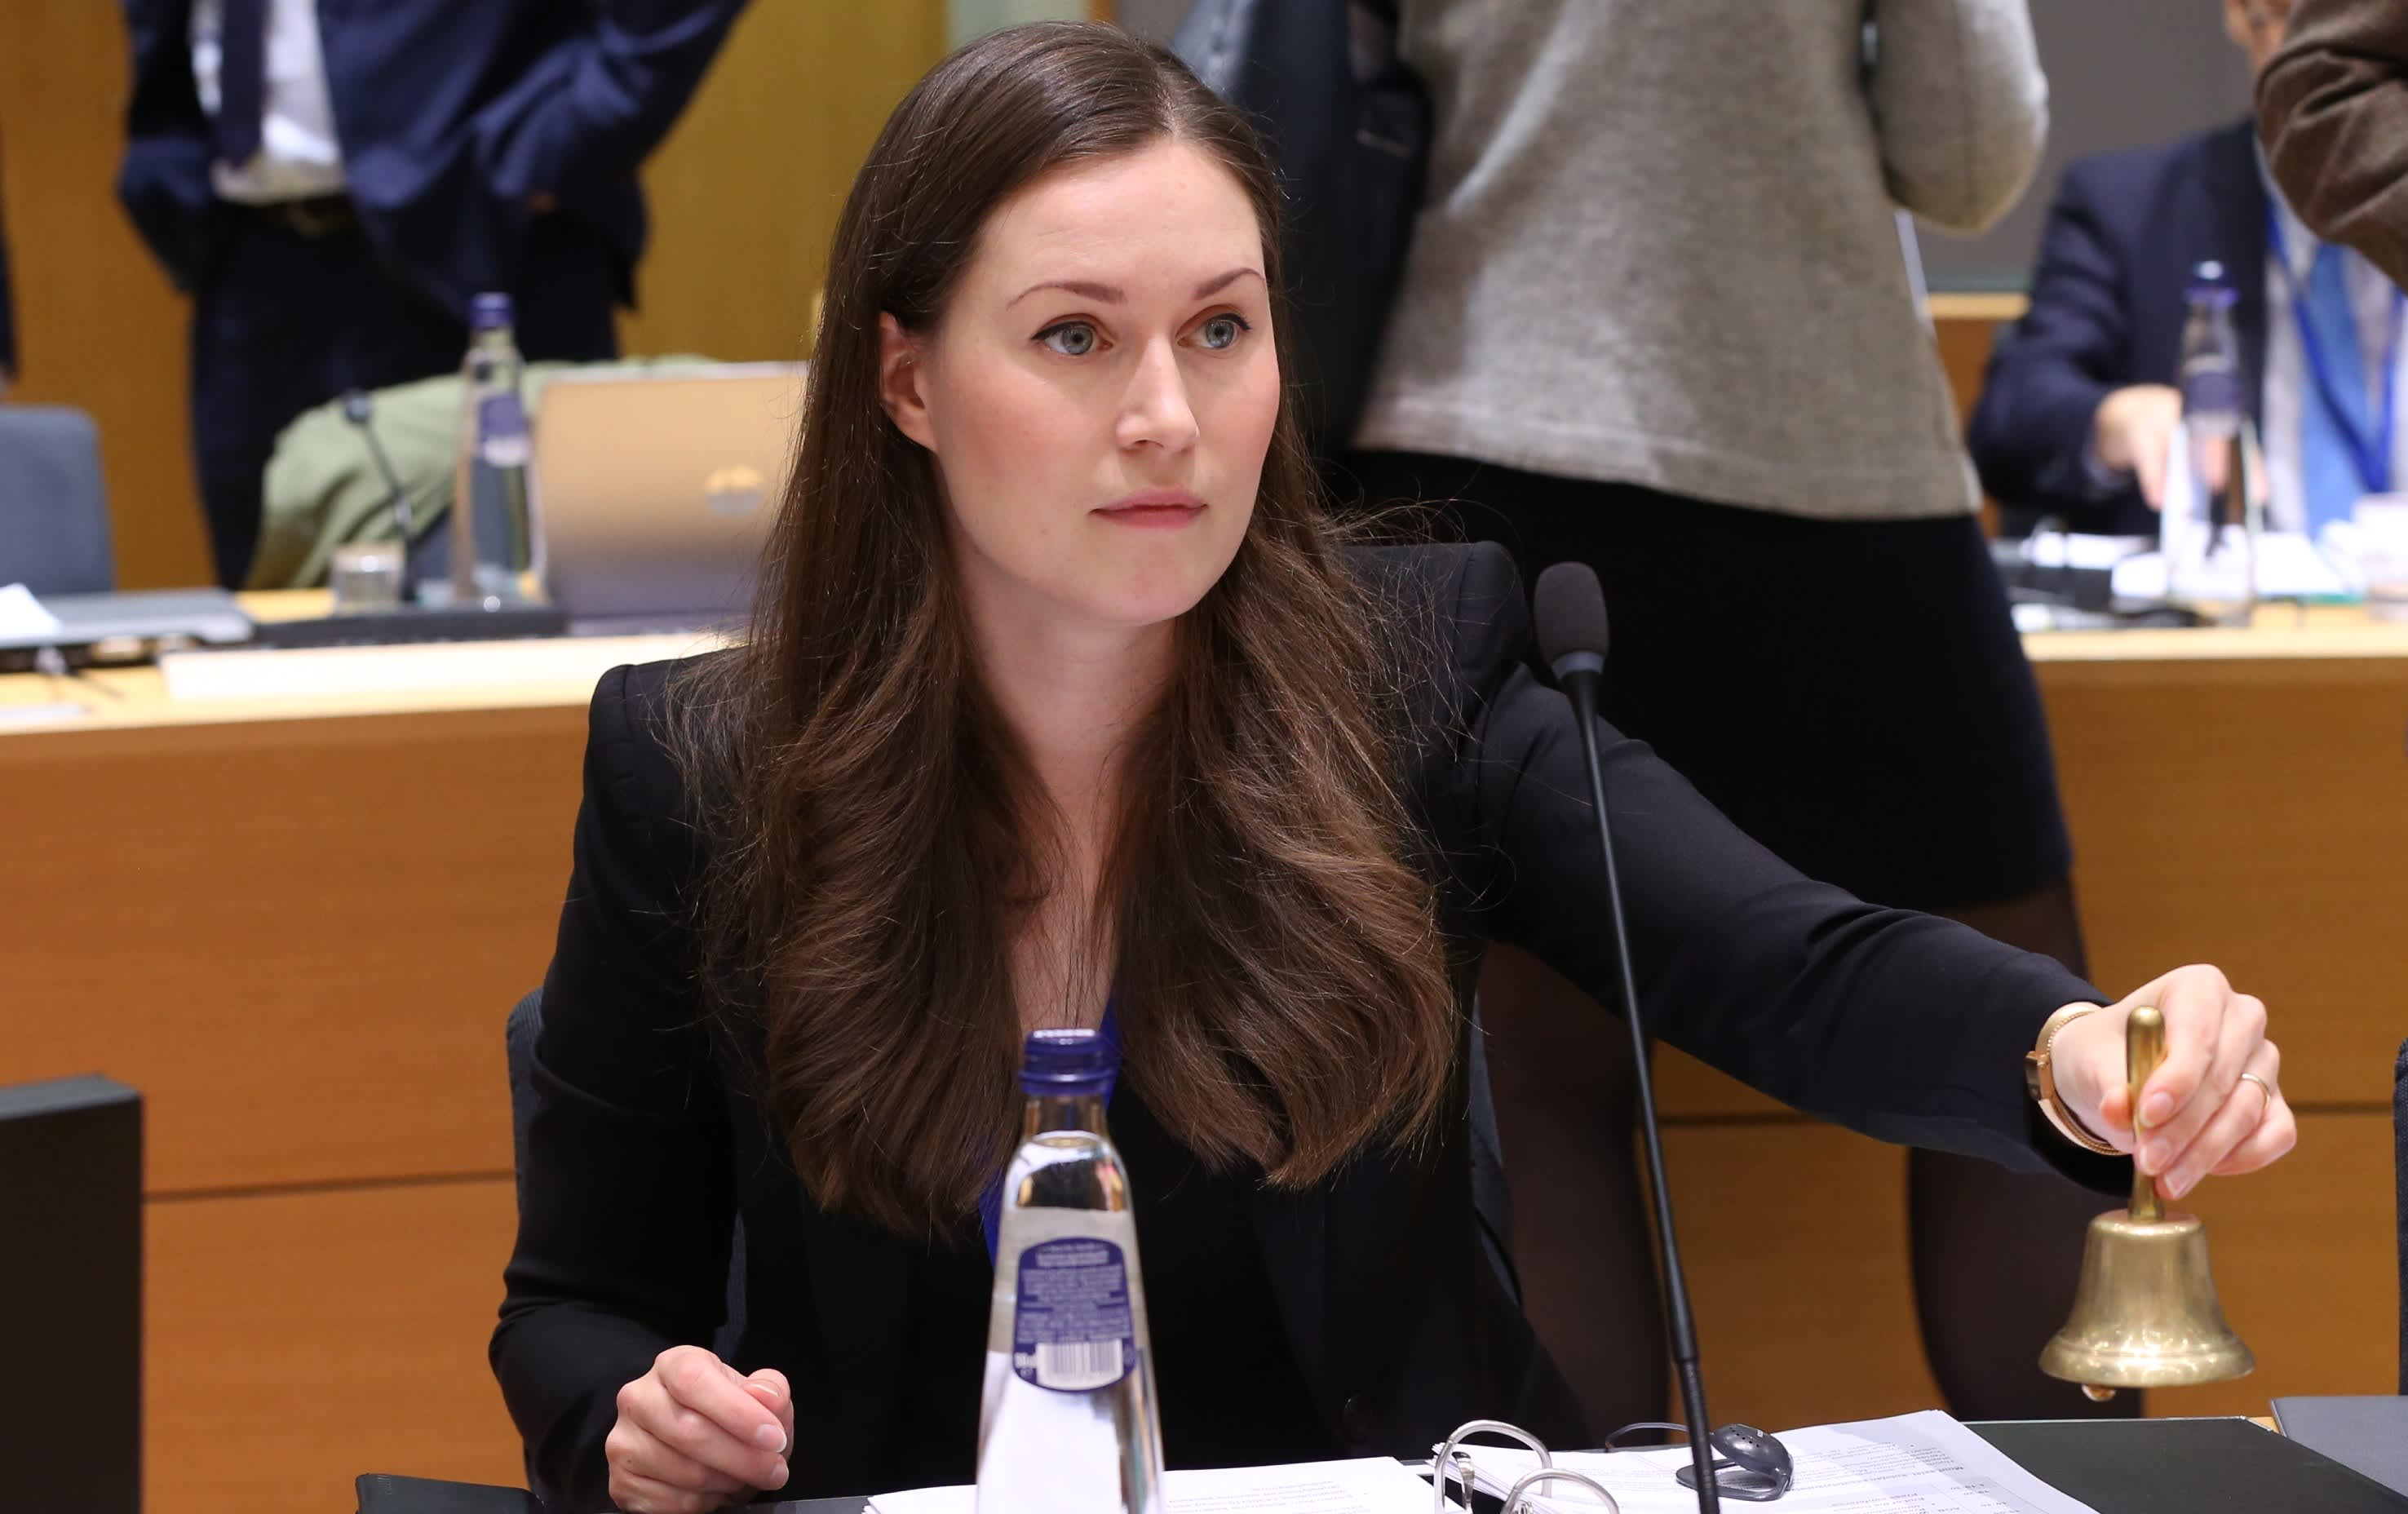 Finland's Sanna Marin set to become the world's youngest prime minister at 34